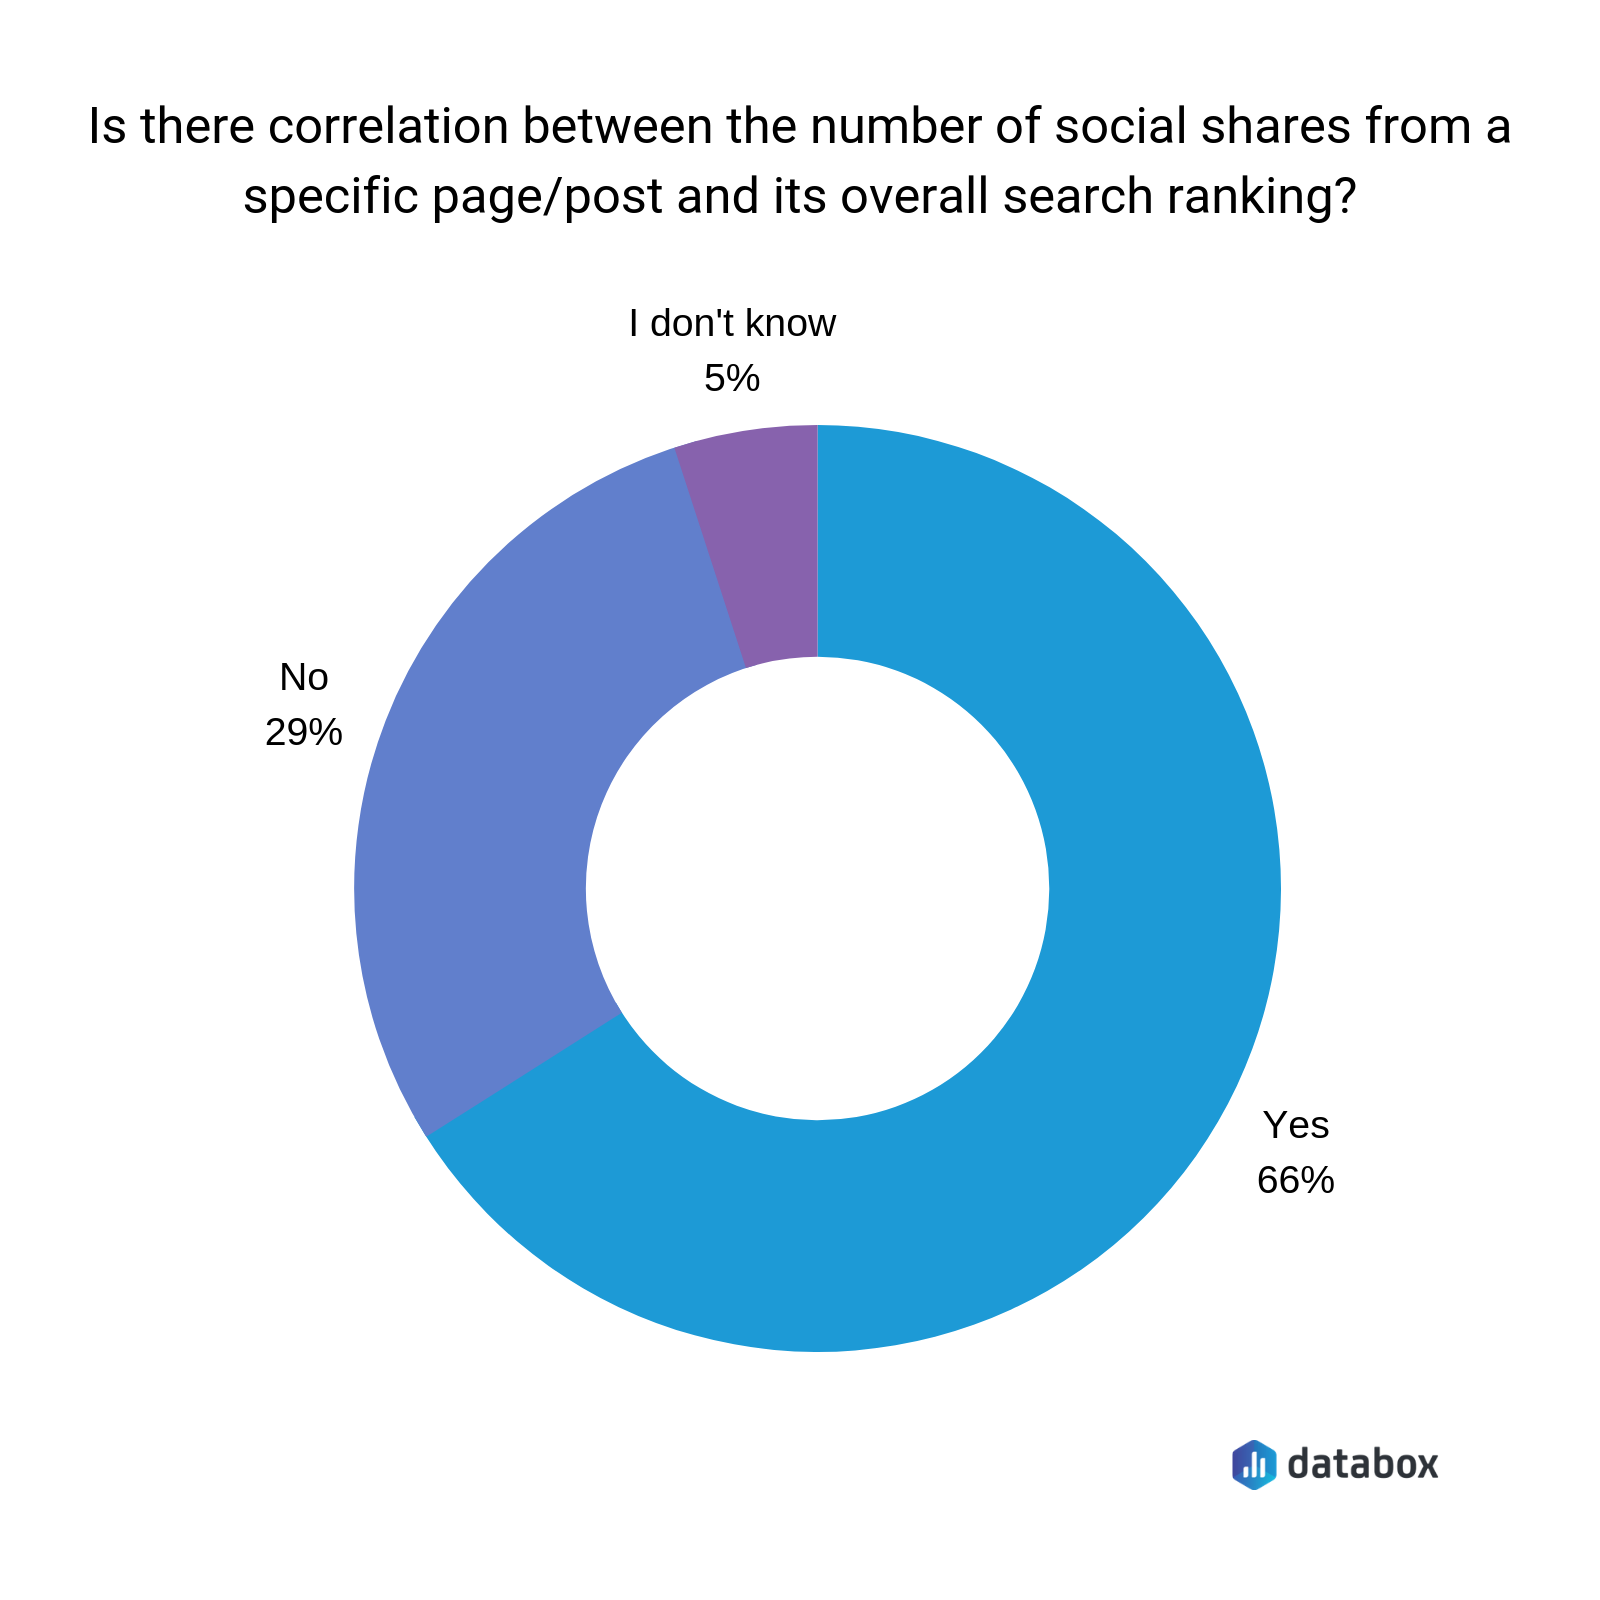 correlation between number of social shares from specific page and its overall search rankings survey results